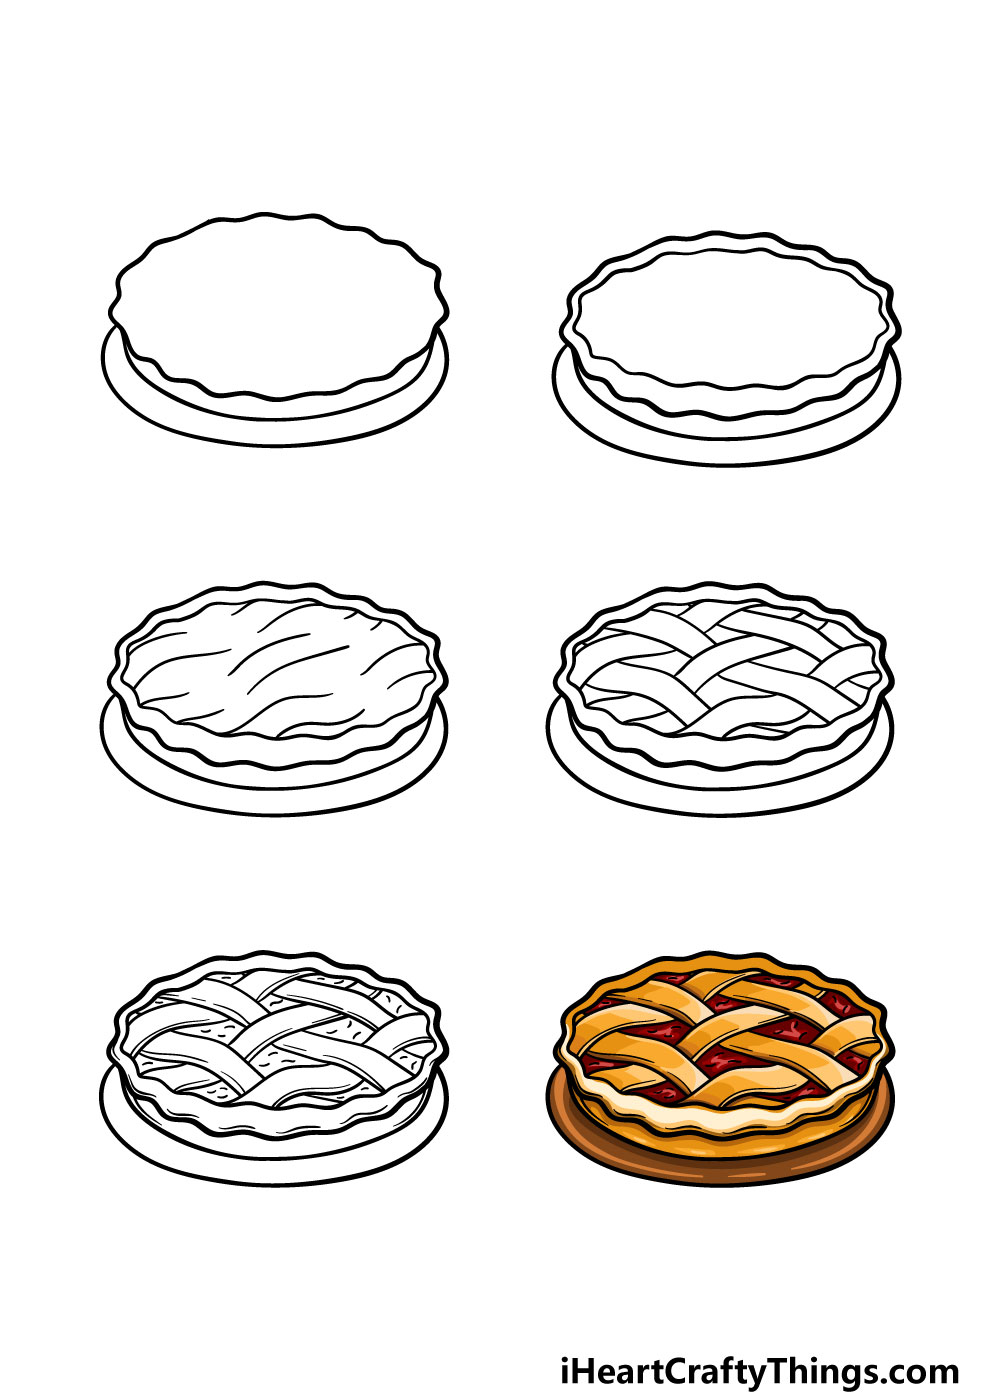 how to draw a pie in 6 steps